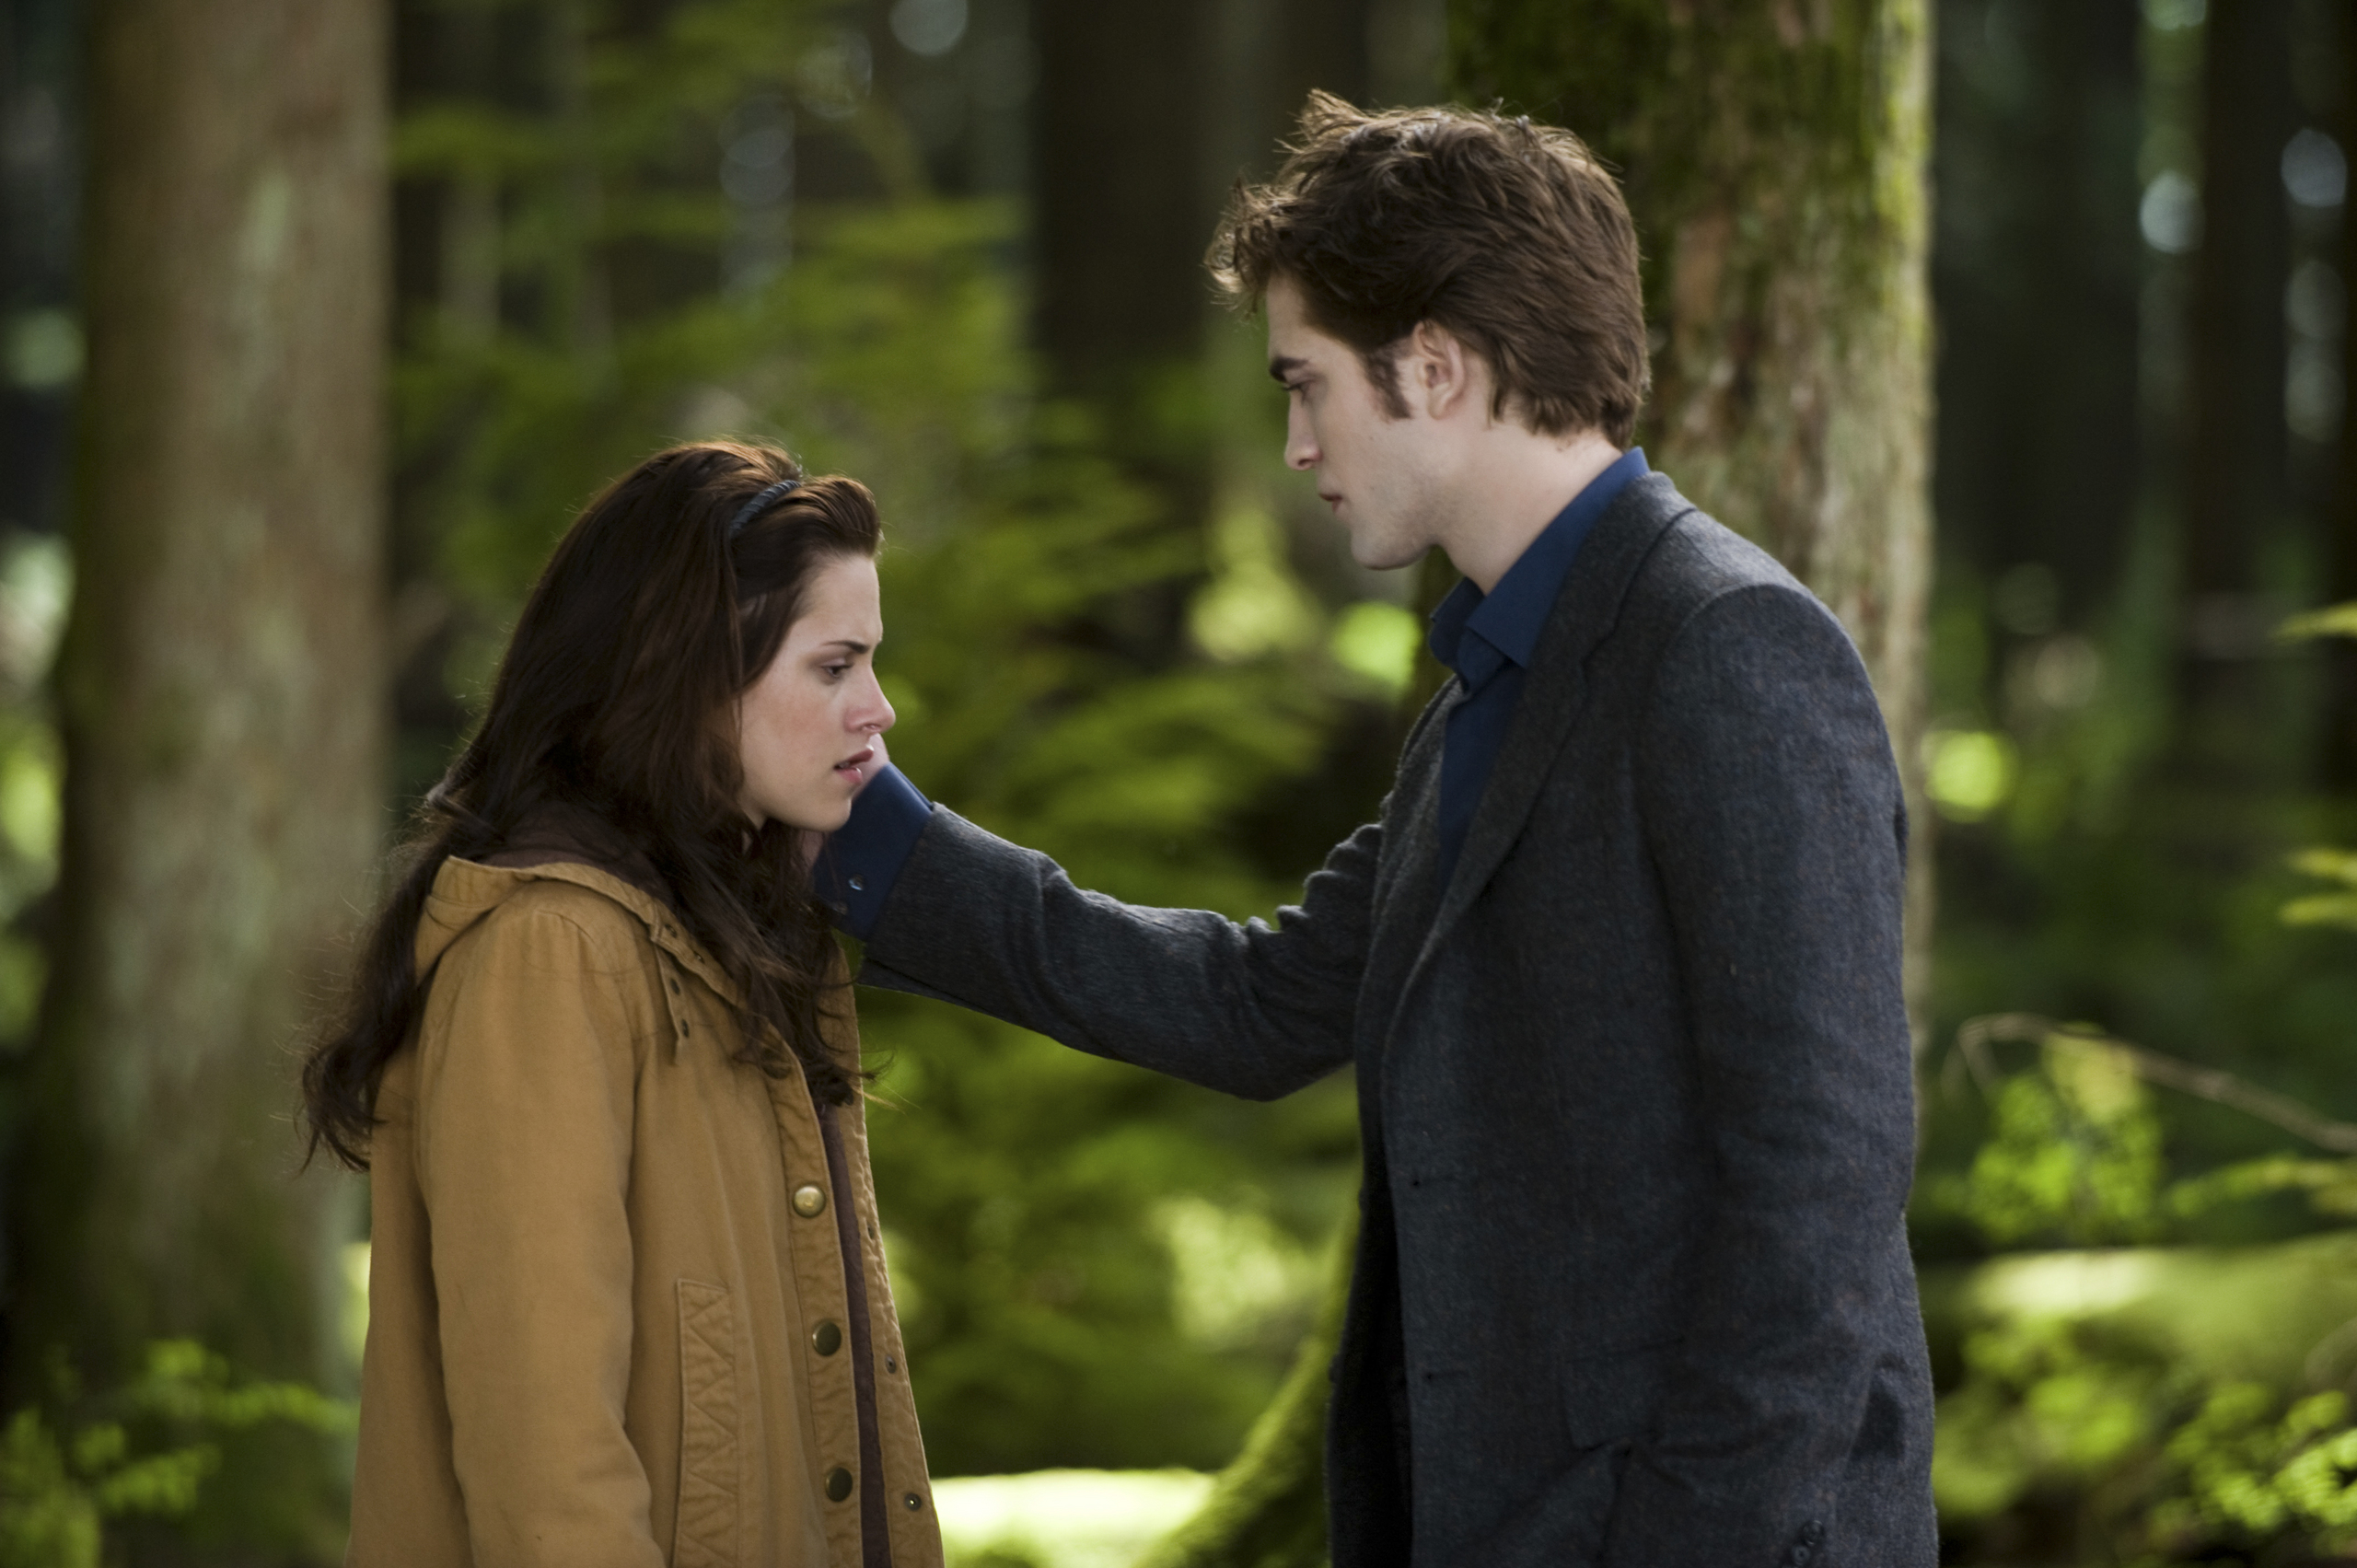 http://images2.fanpop.com/images/photos/6500000/New-Break-Up-Scene-Still-twilight-series-6519745-2560-1703.jpg